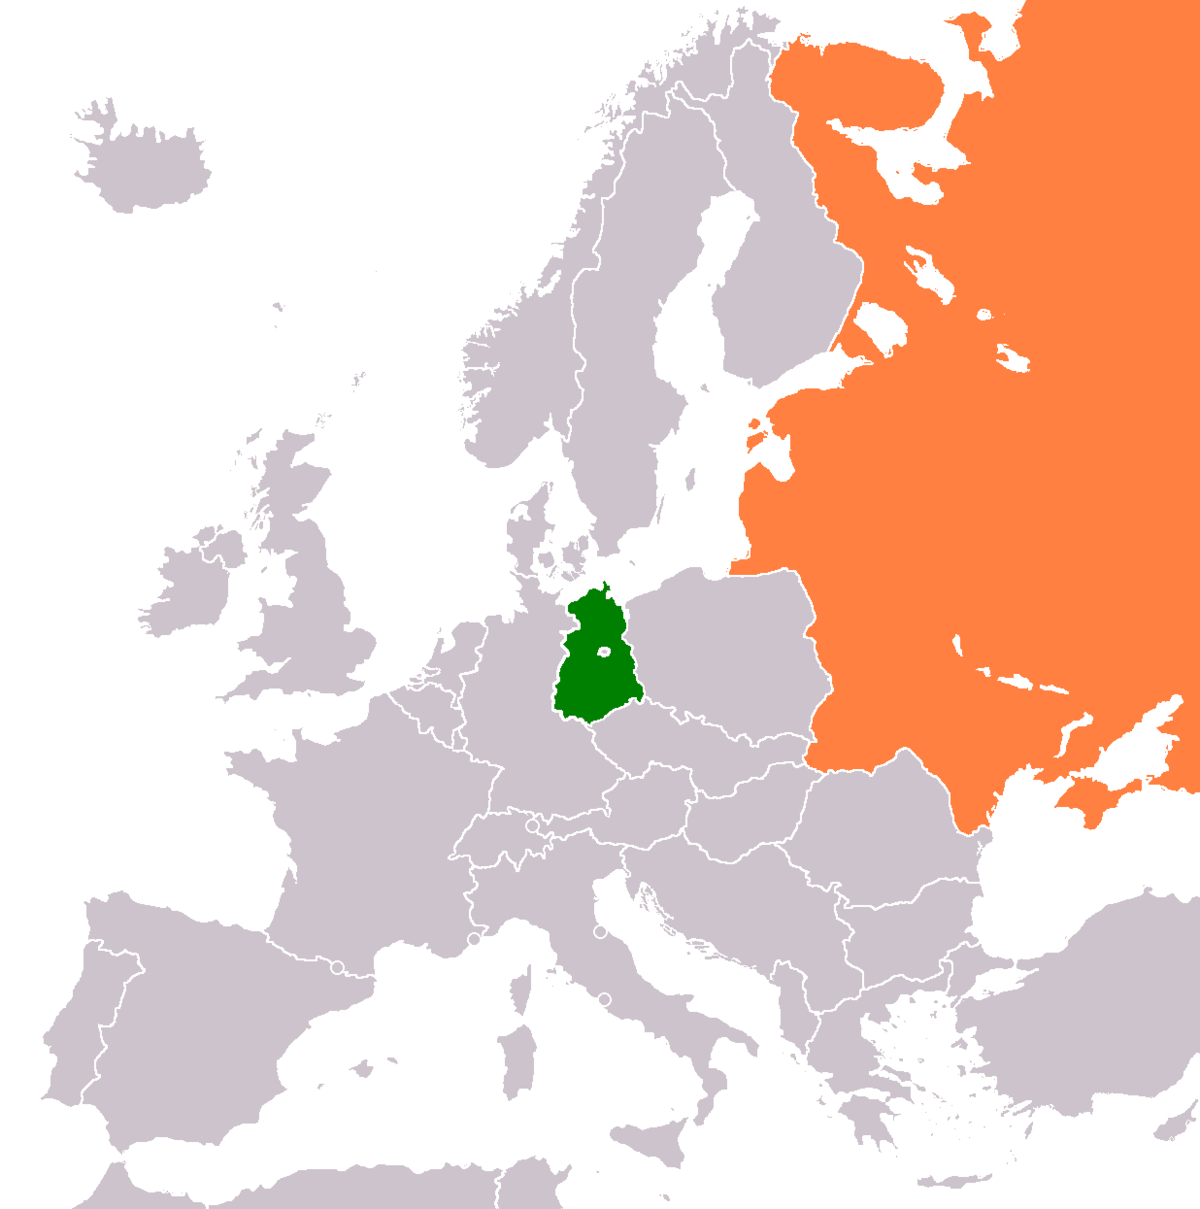 east germanysoviet union relations wikipedia